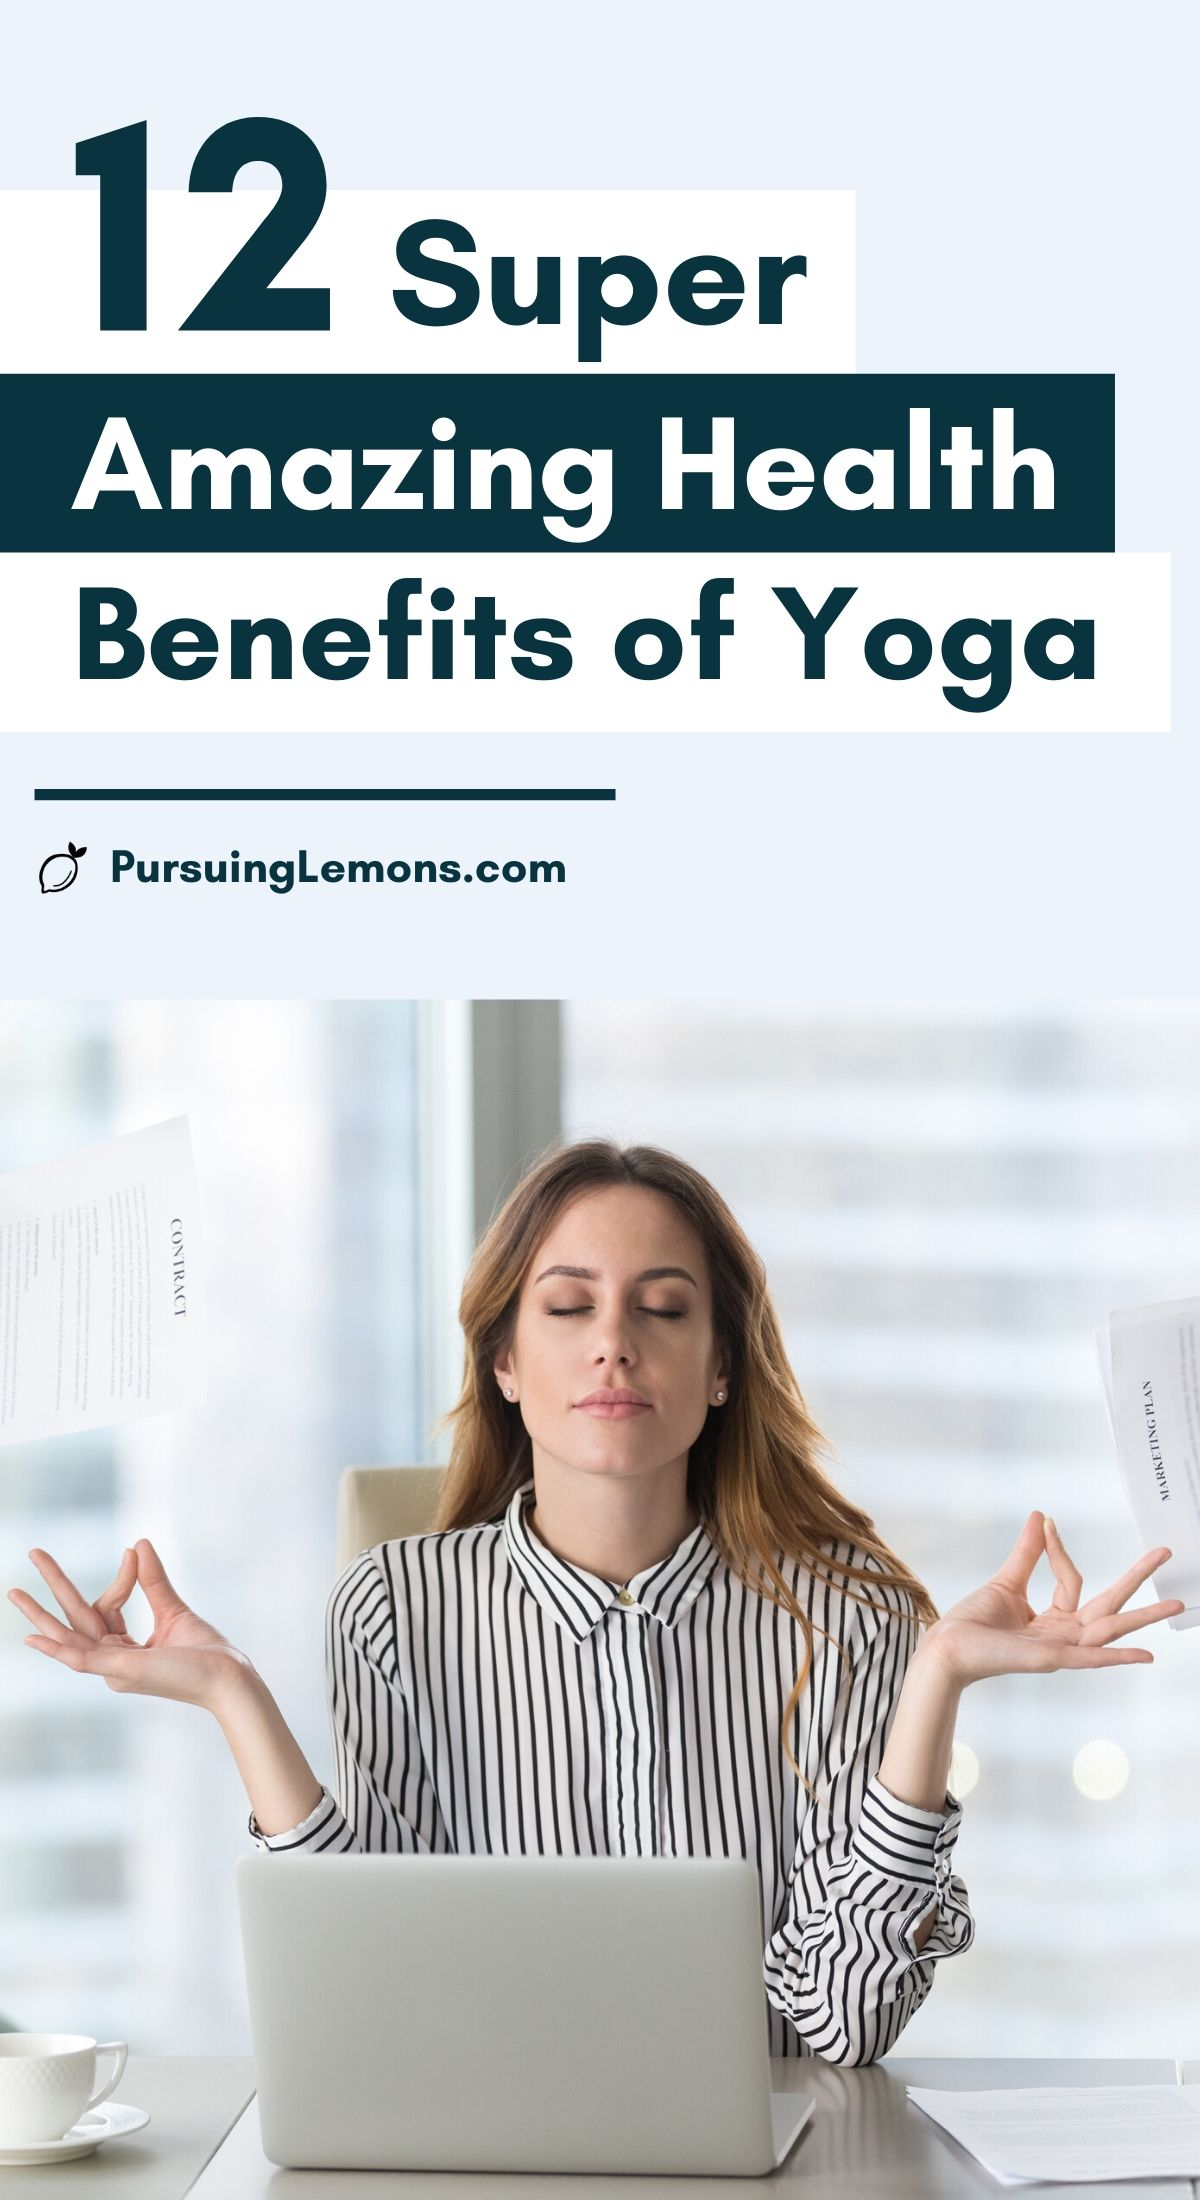 12 Super Amazing Health Benefits of Yoga   Yoga is a natural way of transforming your health. By practicing yoga poses (asanas), breathing techniques and meditation, you will see improvement in your physical and mental health. Here are 12 health benefits of yoga on why you should consider practicing yoga daily! #yoga #yogabenefits #yogalifestyle